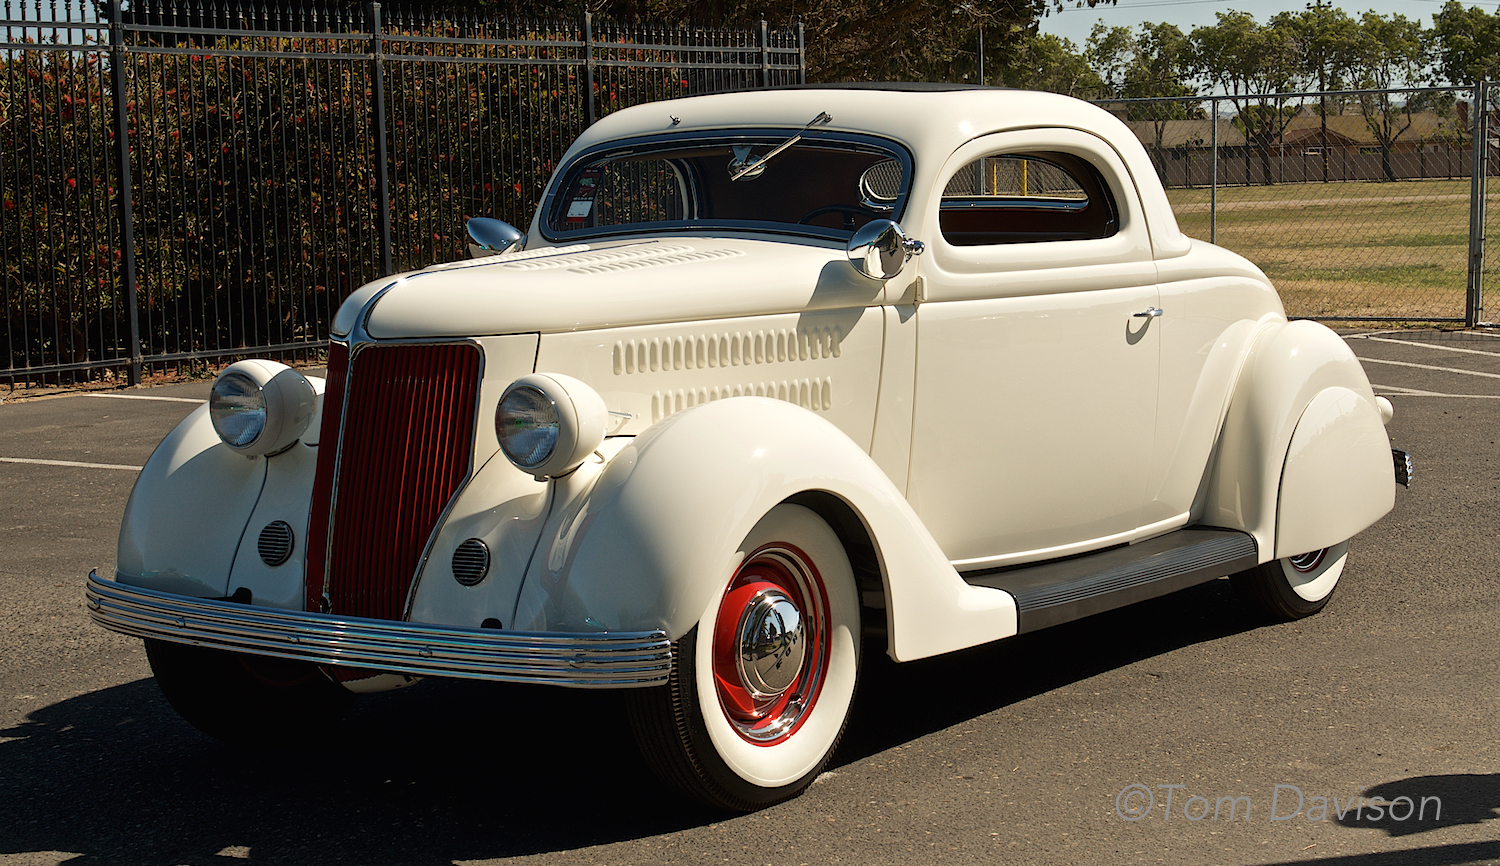 This 1936 Ford is an iconic early hot rod from the 1040s, recently found and restored.